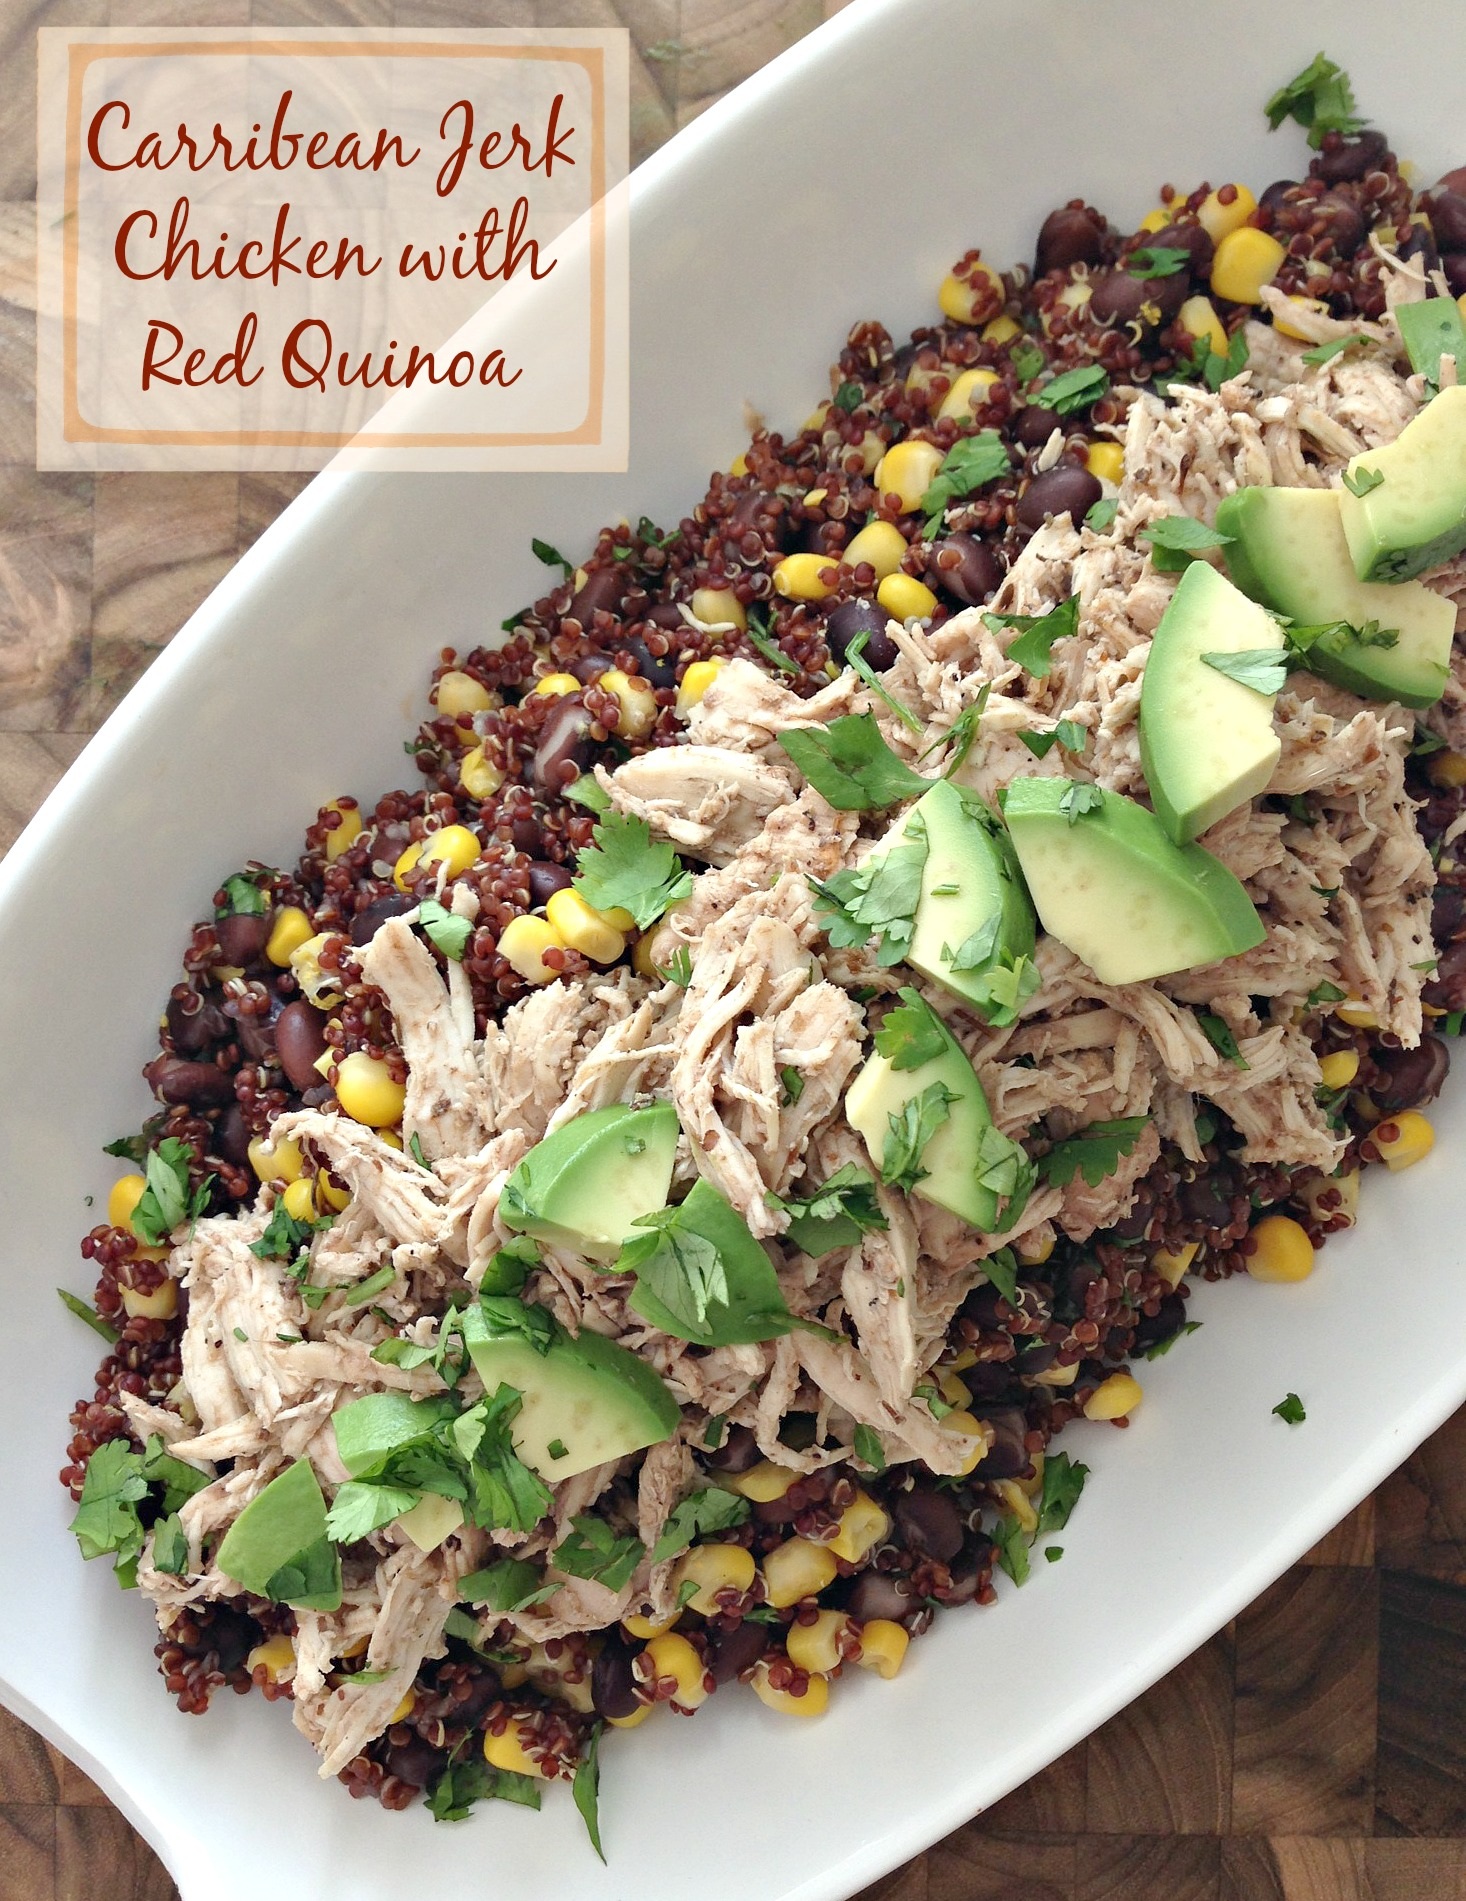 Slow Cooker Caribbean Jerk Chicken with Red Quinoa